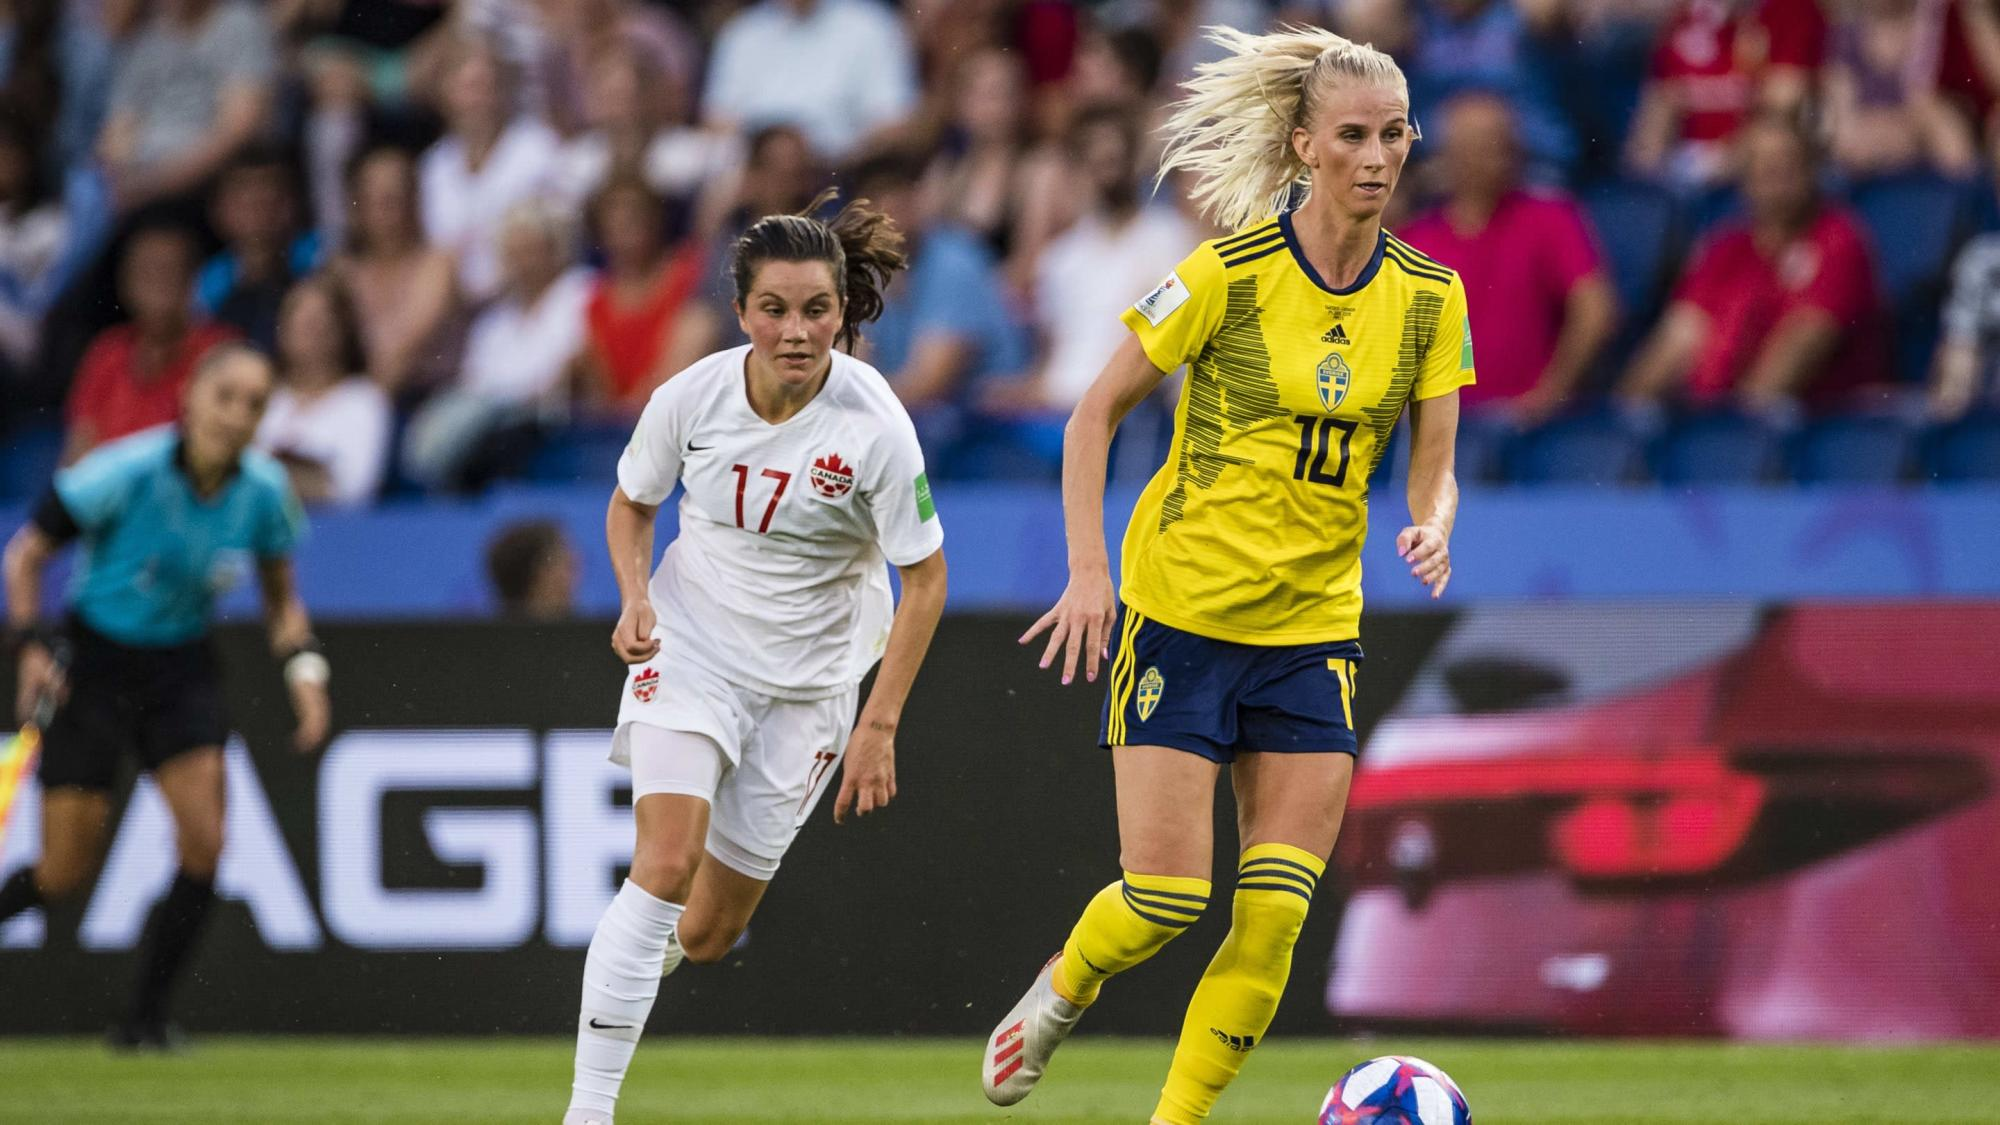 Schedule, TV channel in Spain, Mexico and South America, live broadcasts and lineups for the women's final